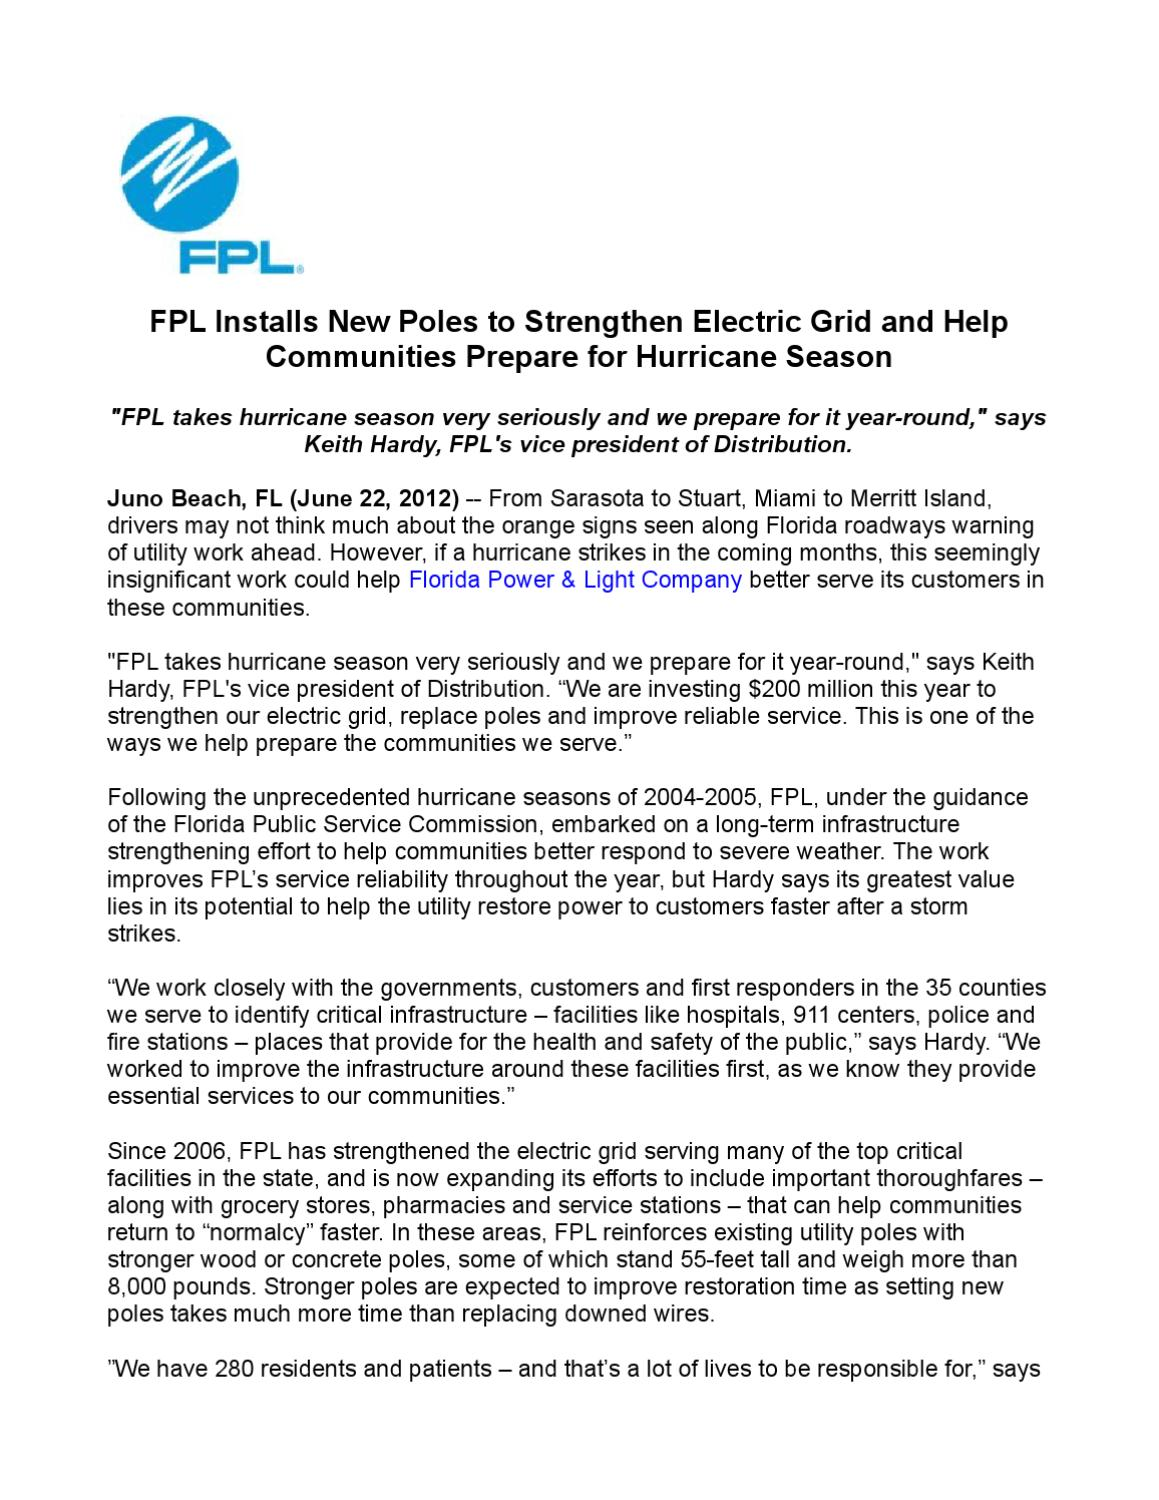 Fpl Installs New Poles To Strengthen Electric Grid And Help Communities Prepare For Hurricane Season By Star One Public Relations Issuu